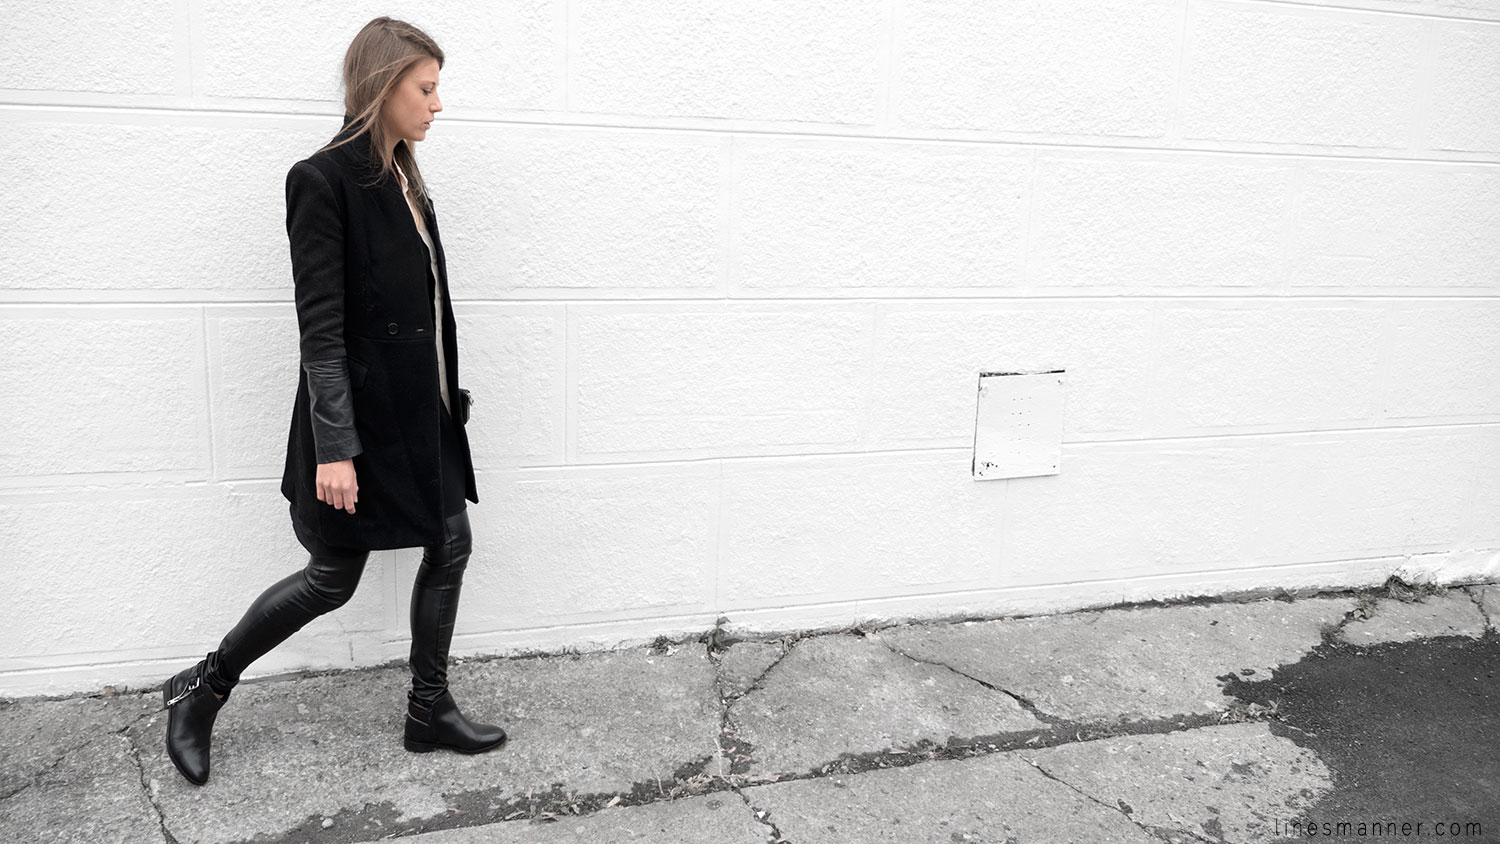 Lines-Manner-Timeless-Comfort-Essentials-Monochrome-Trend-Minimal-Textures-Fall-Leather-Details-Simplicity-Modern-Basics-Outfit-Structure-Relaxed-Leather-Luxurious-Sophistication-6